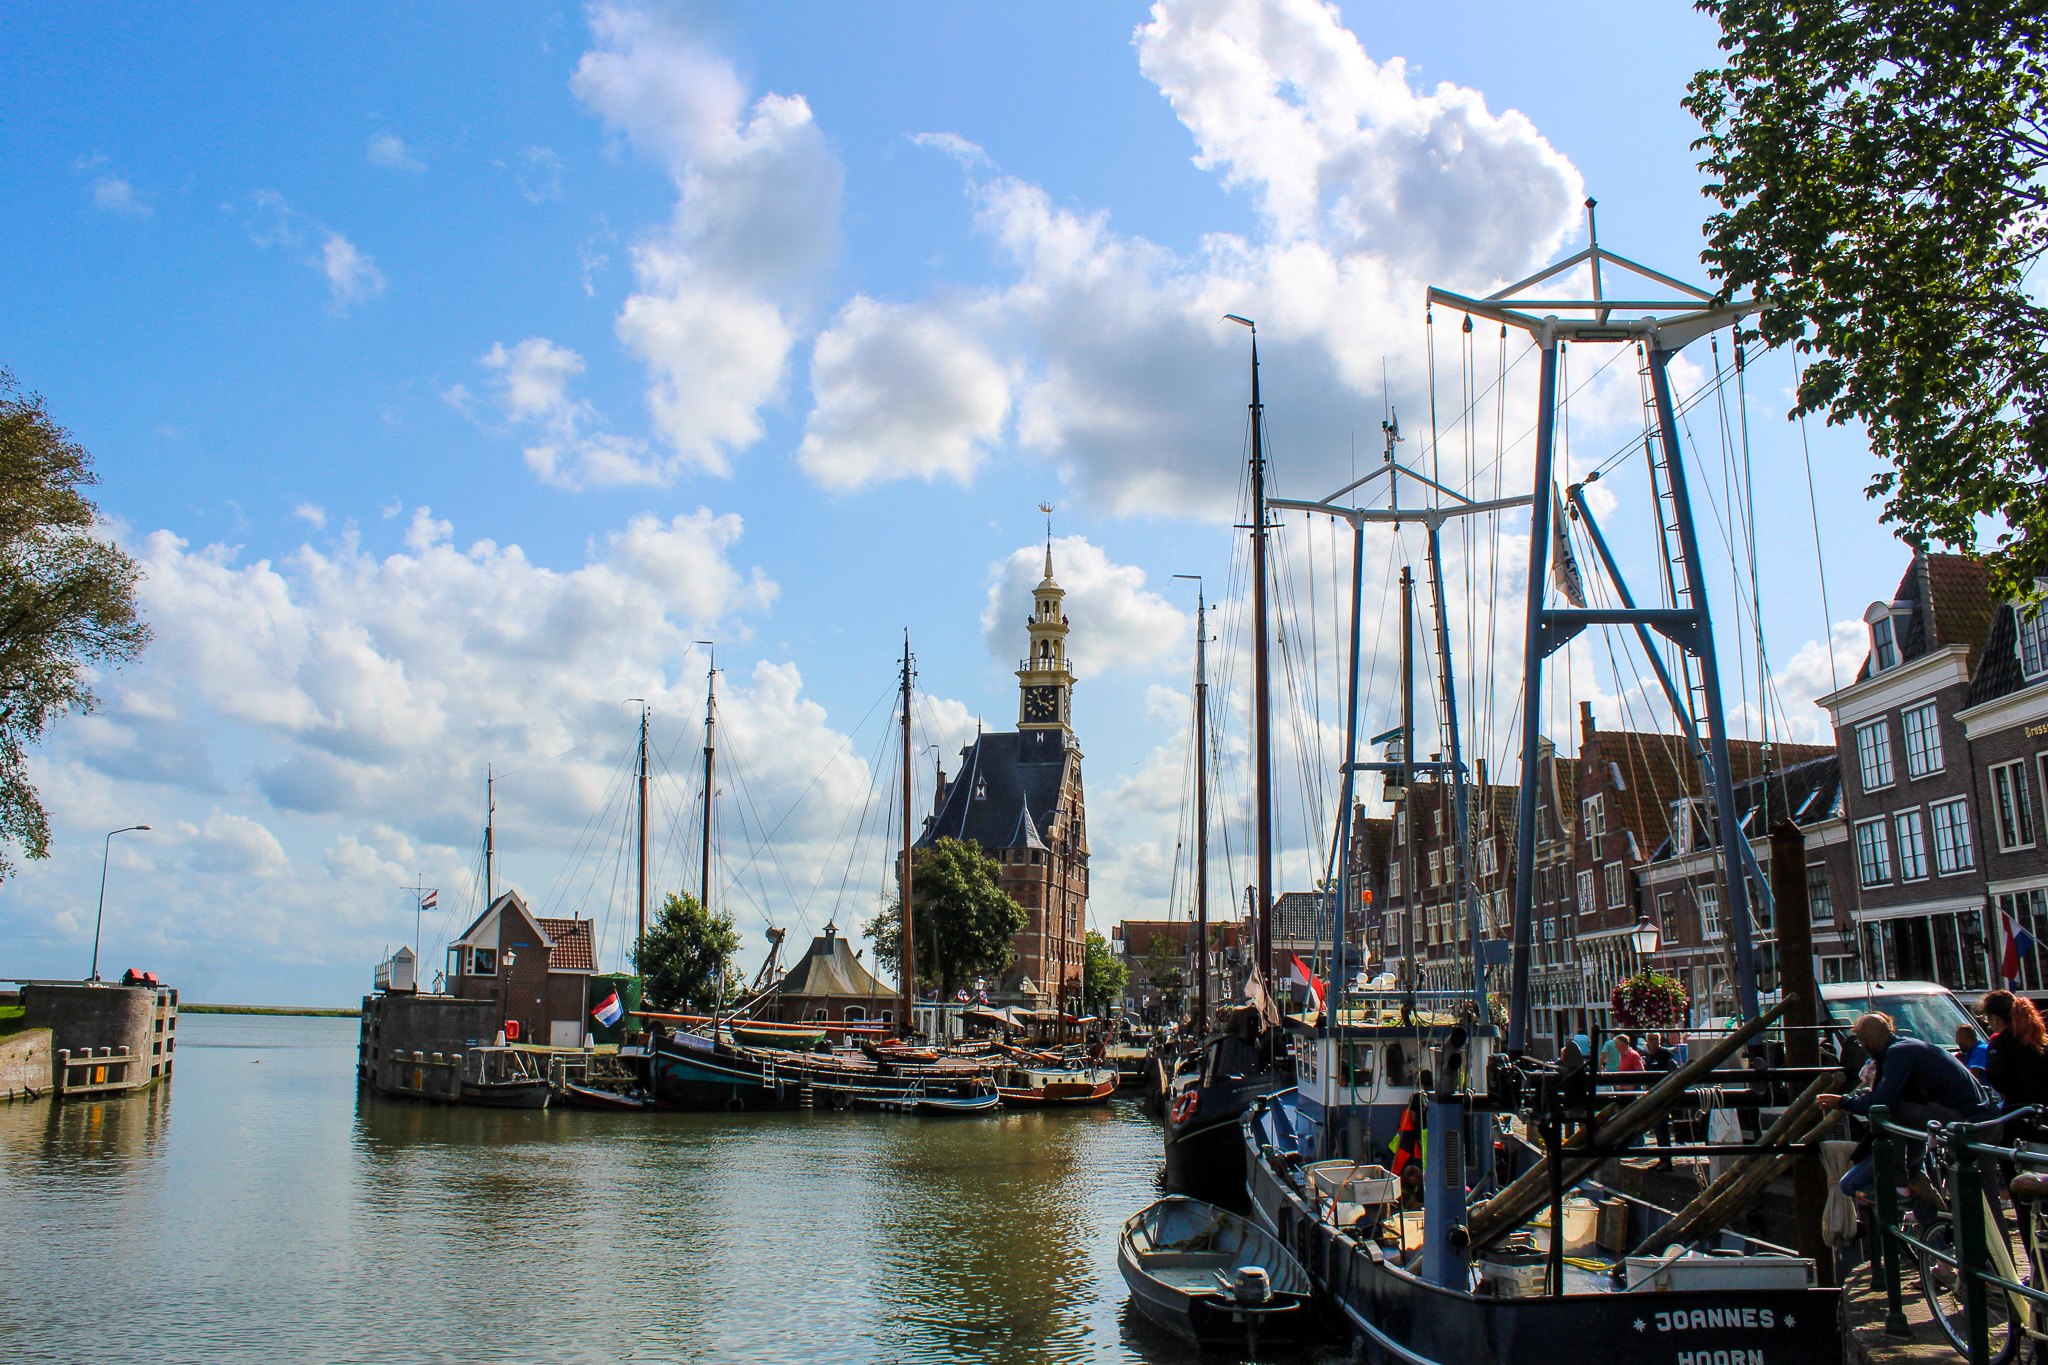 is amsterdam worth visiting? yes for day trips to hoorn